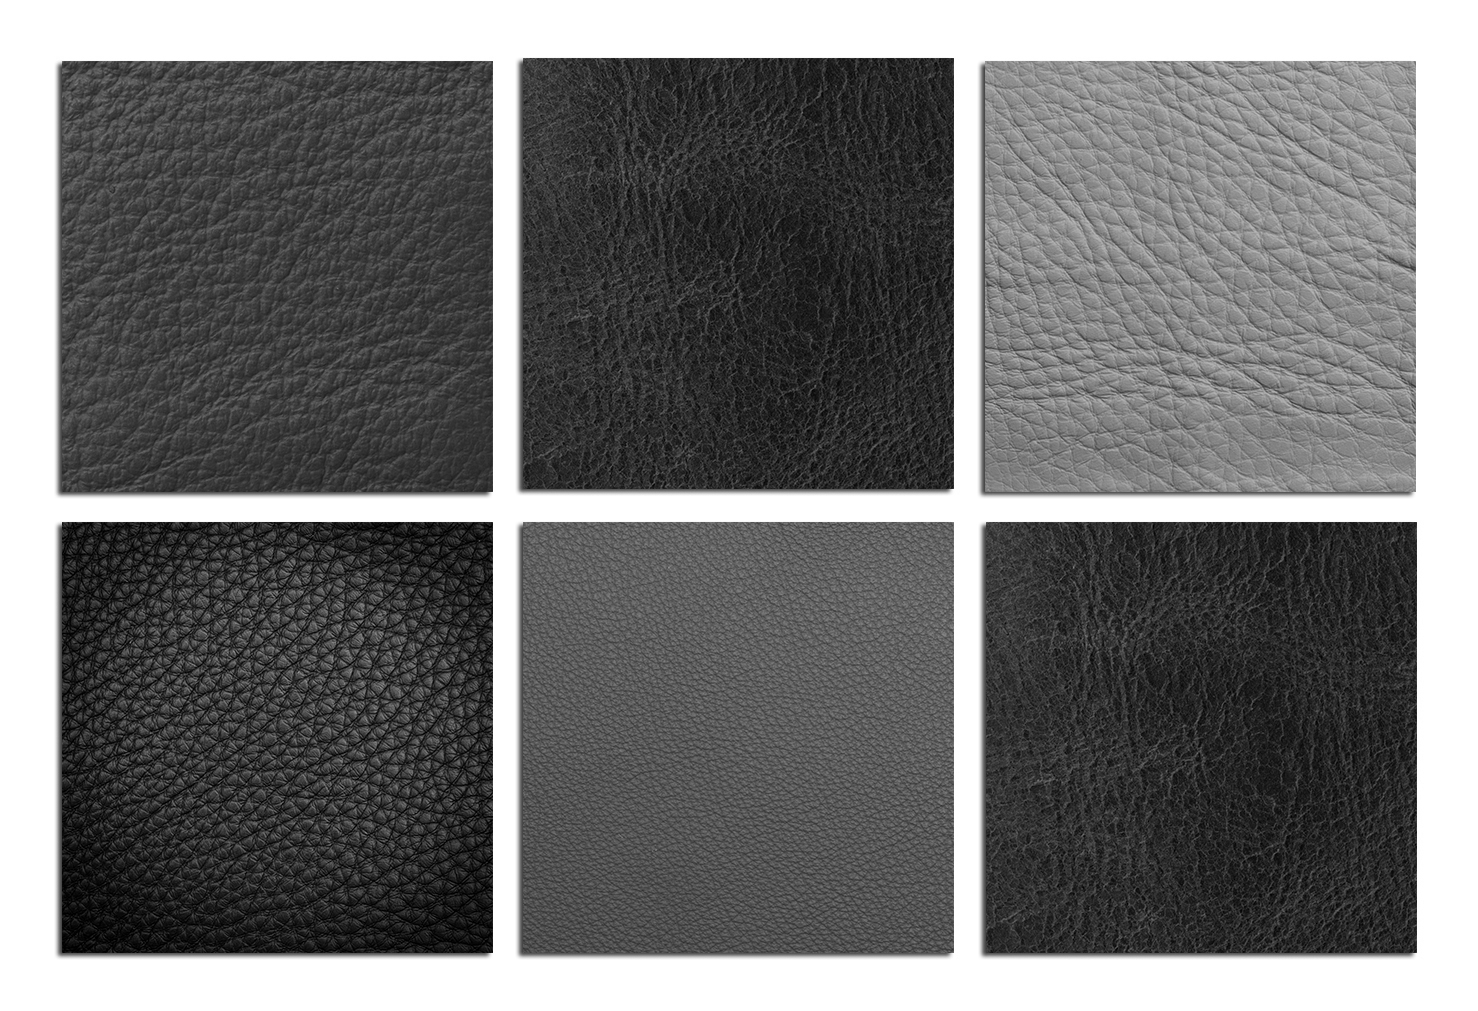 Black Leather Textures 1